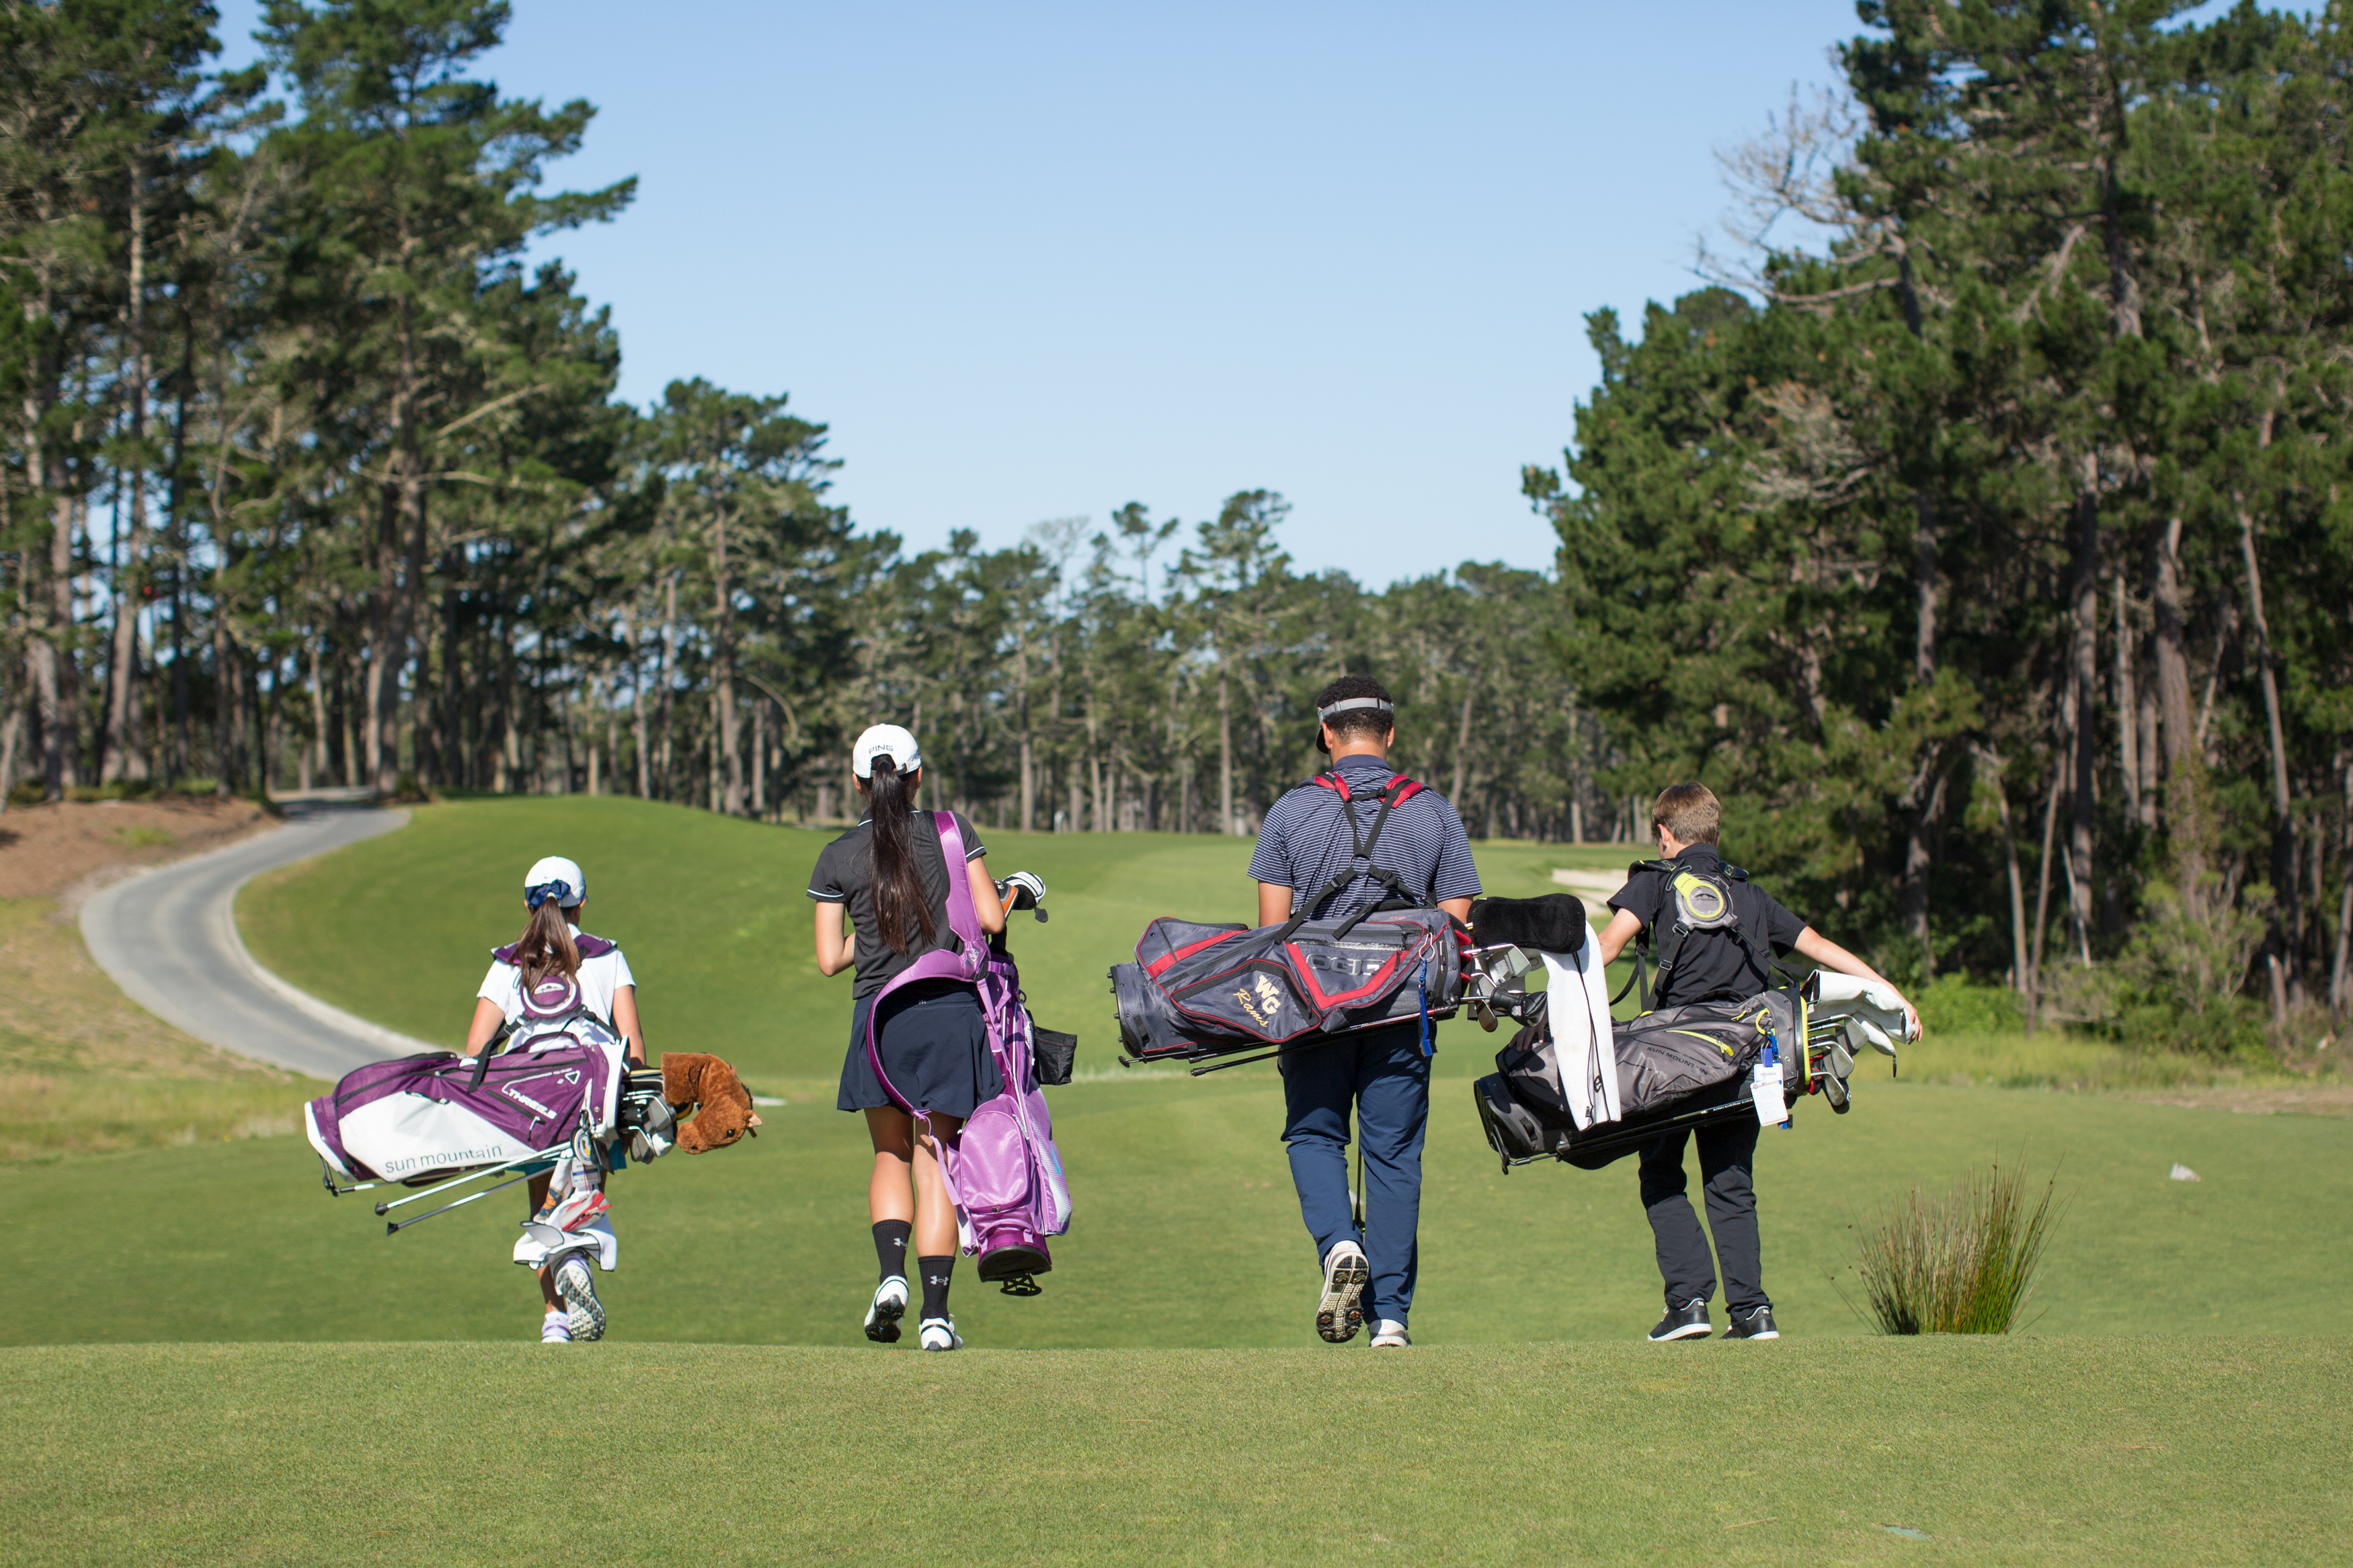 Youth on Course Announces Partnership with Maryland State Golf Association